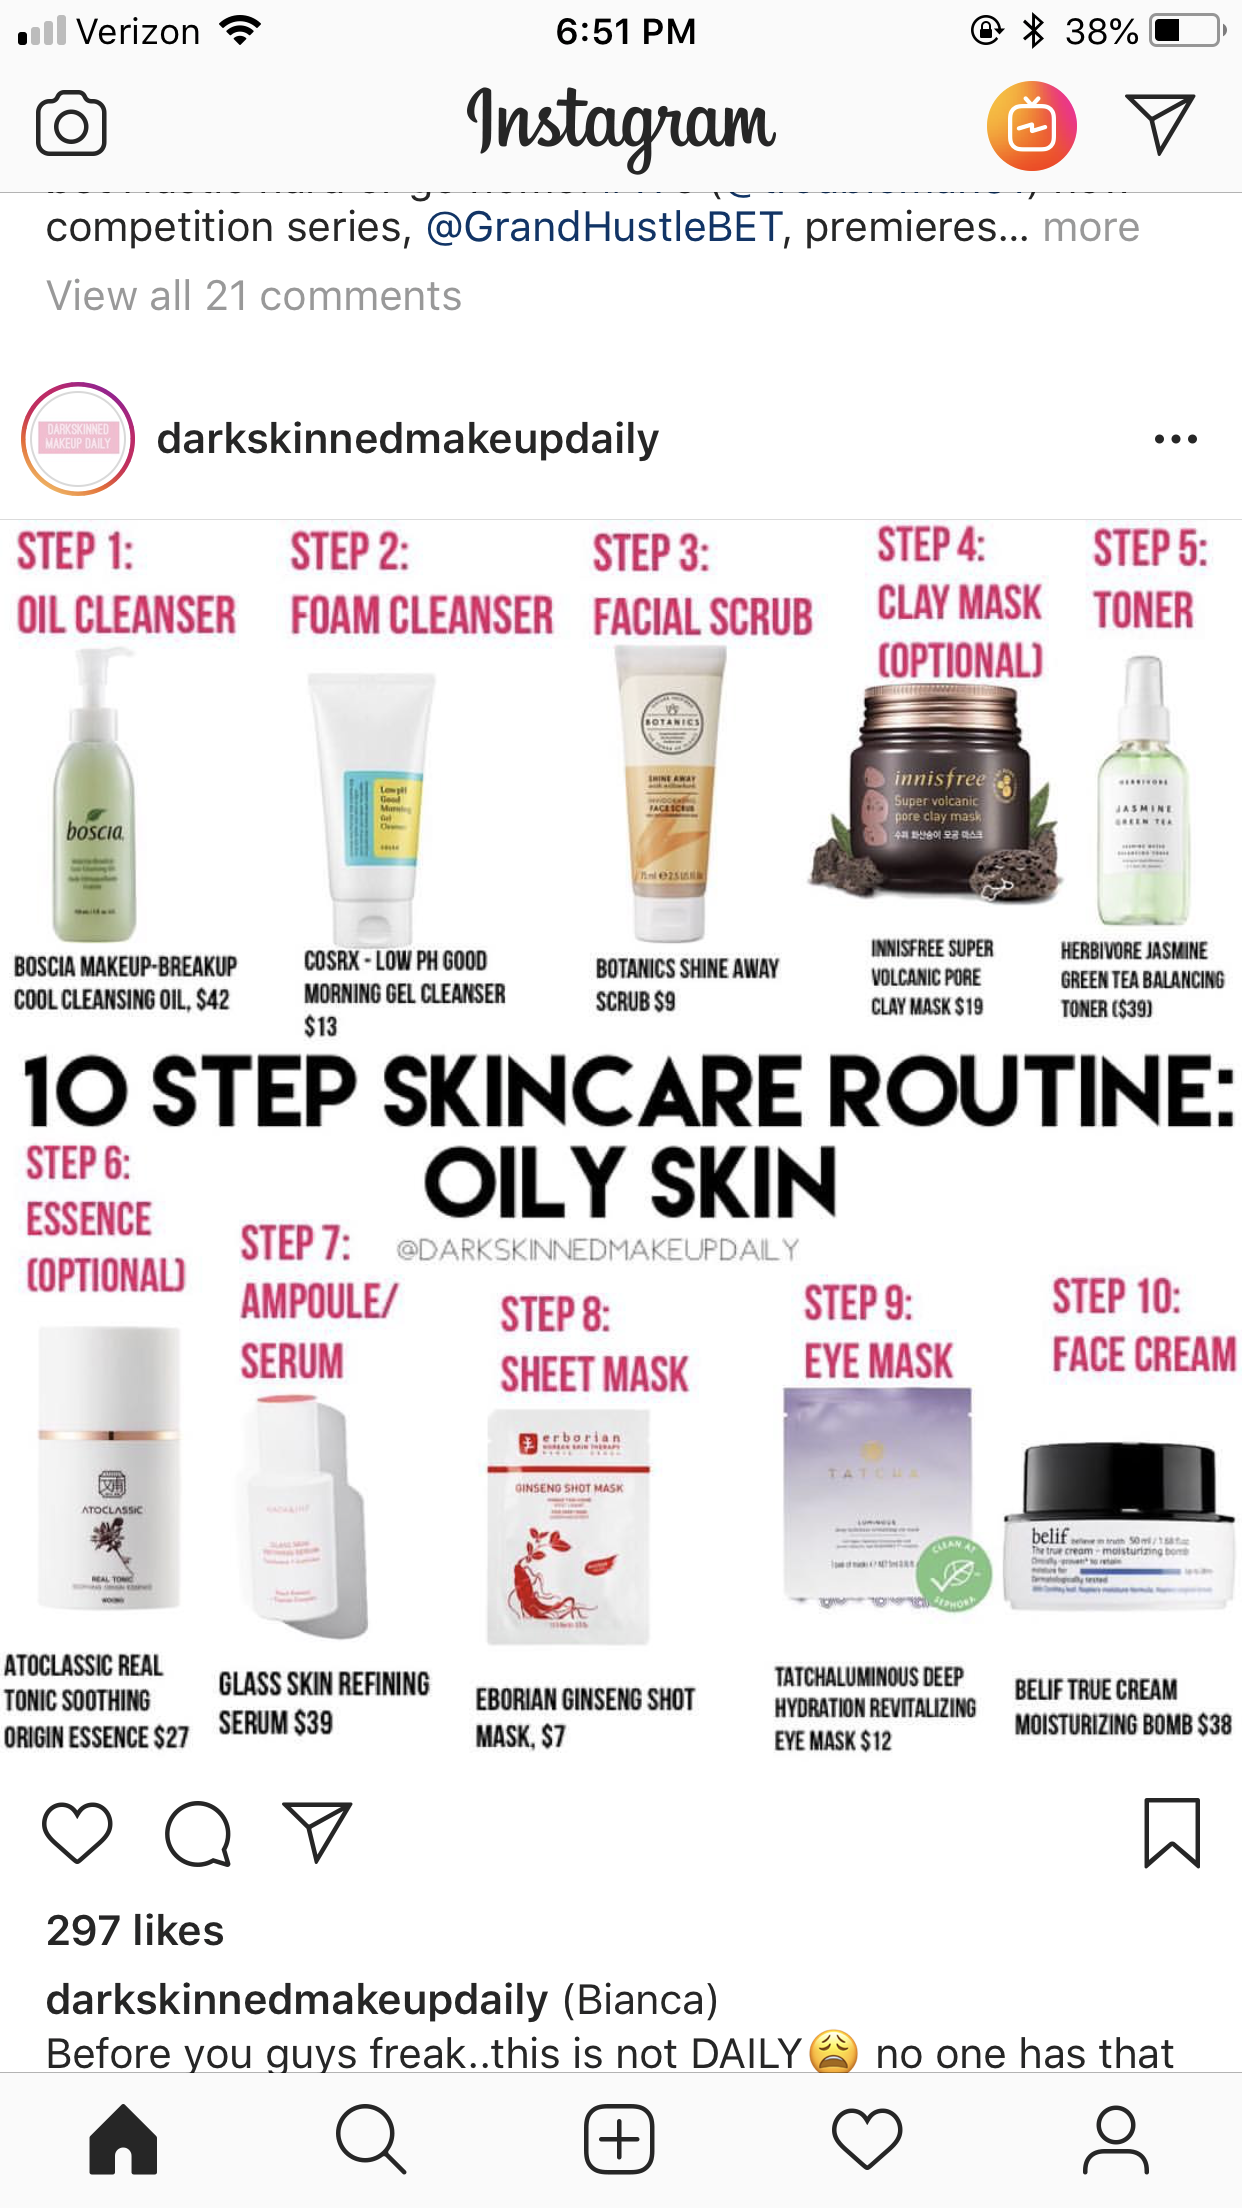 Routine For Oily Skin Oily Routine Skin Skincare Routine 20s Skin Care Tips Beauty Products In 2020 Oily Skin Care Skin Care Steps Oily Skin Care Routine